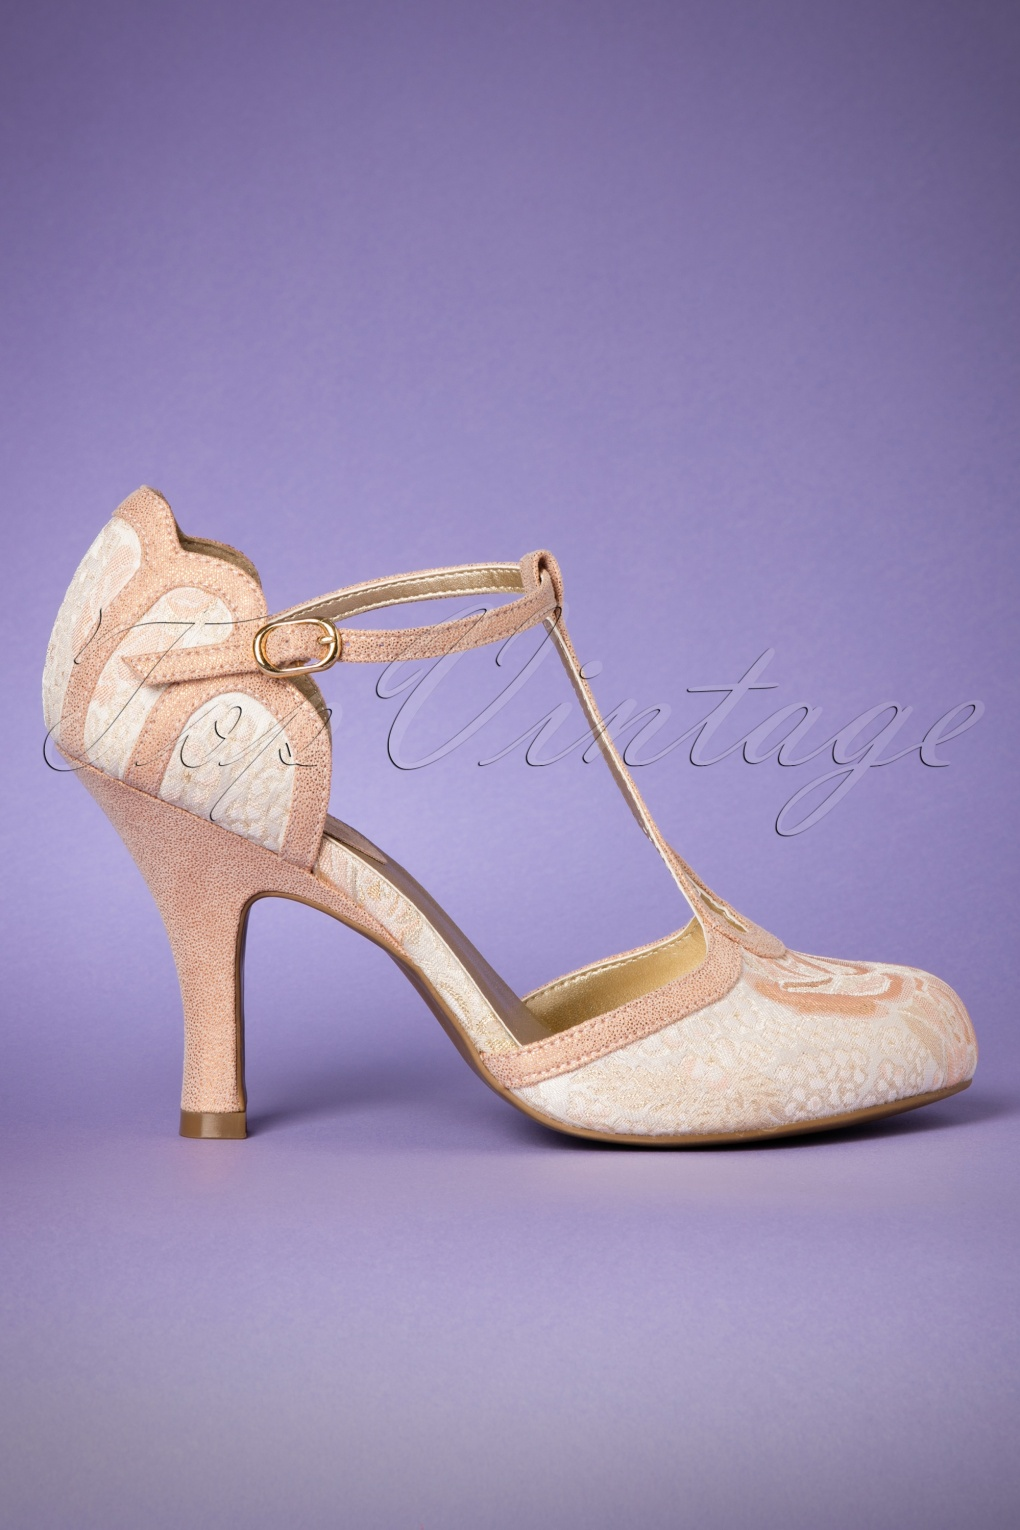 1930s Style Shoes – Art Deco Shoes 50s Polly T-Strap Pumps in Peach £70.63 AT vintagedancer.com